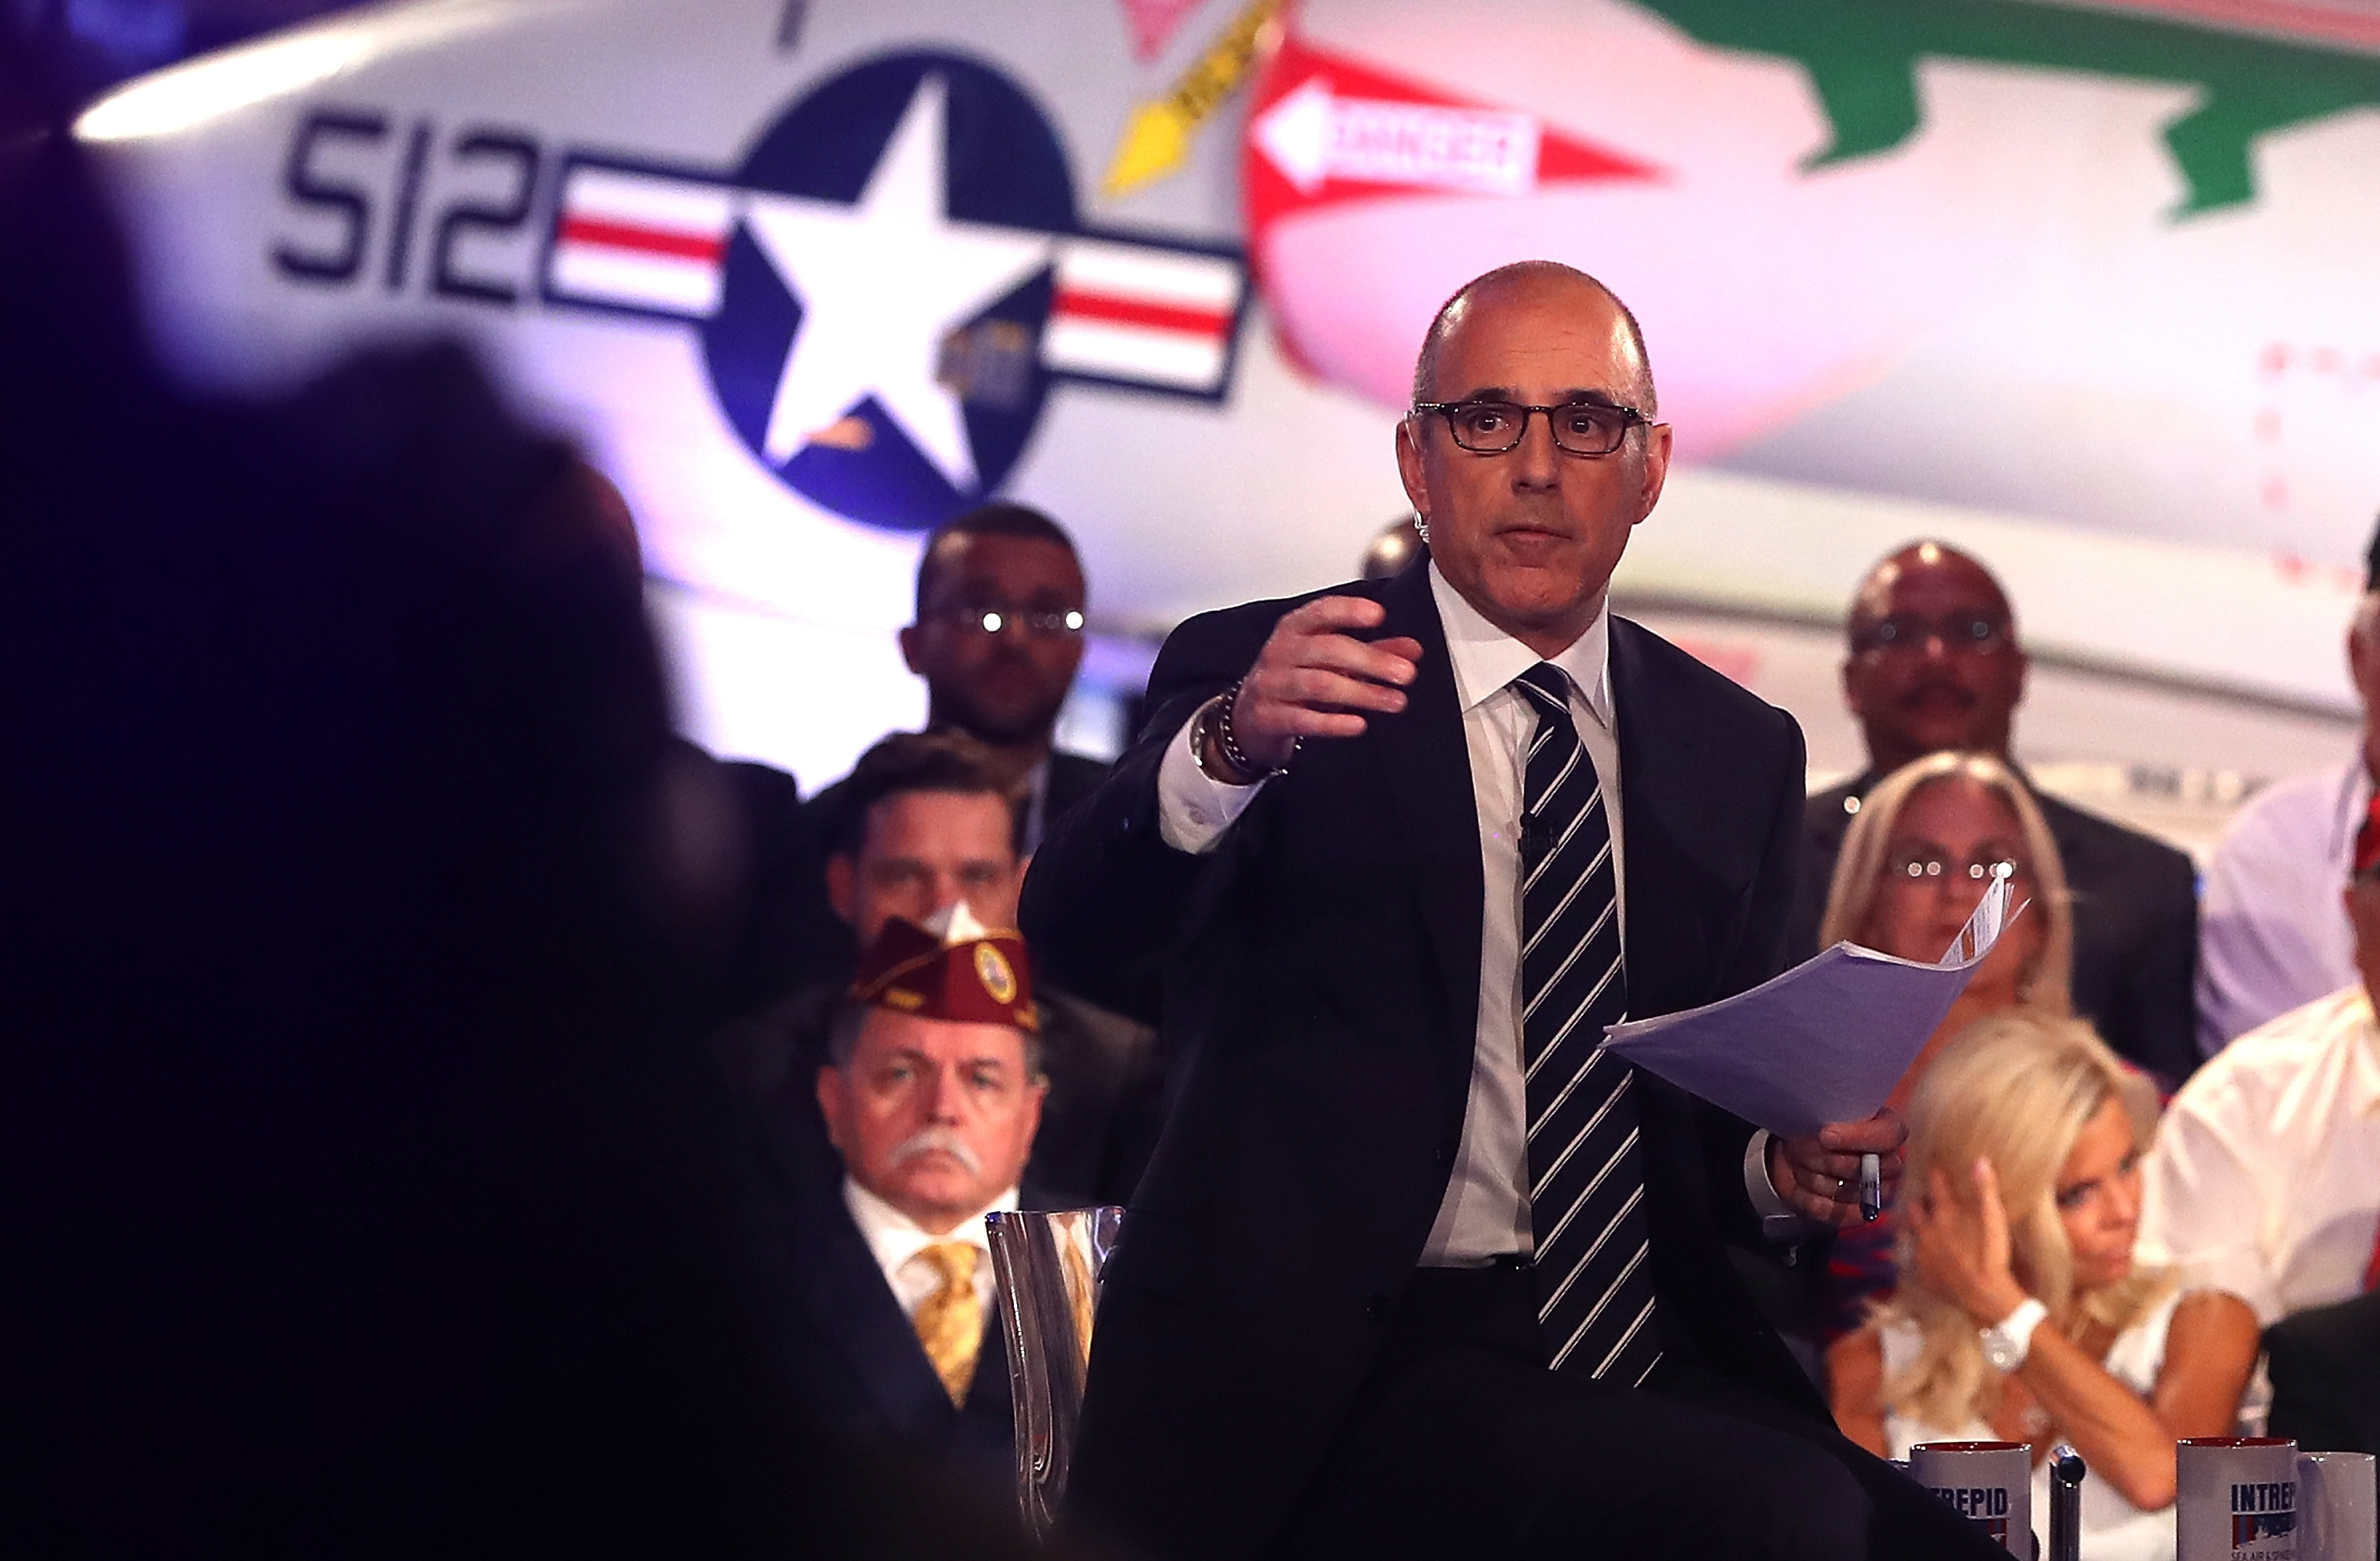 Matt Lauer was not at the top of his game during last week's forum, but it was not his fault.